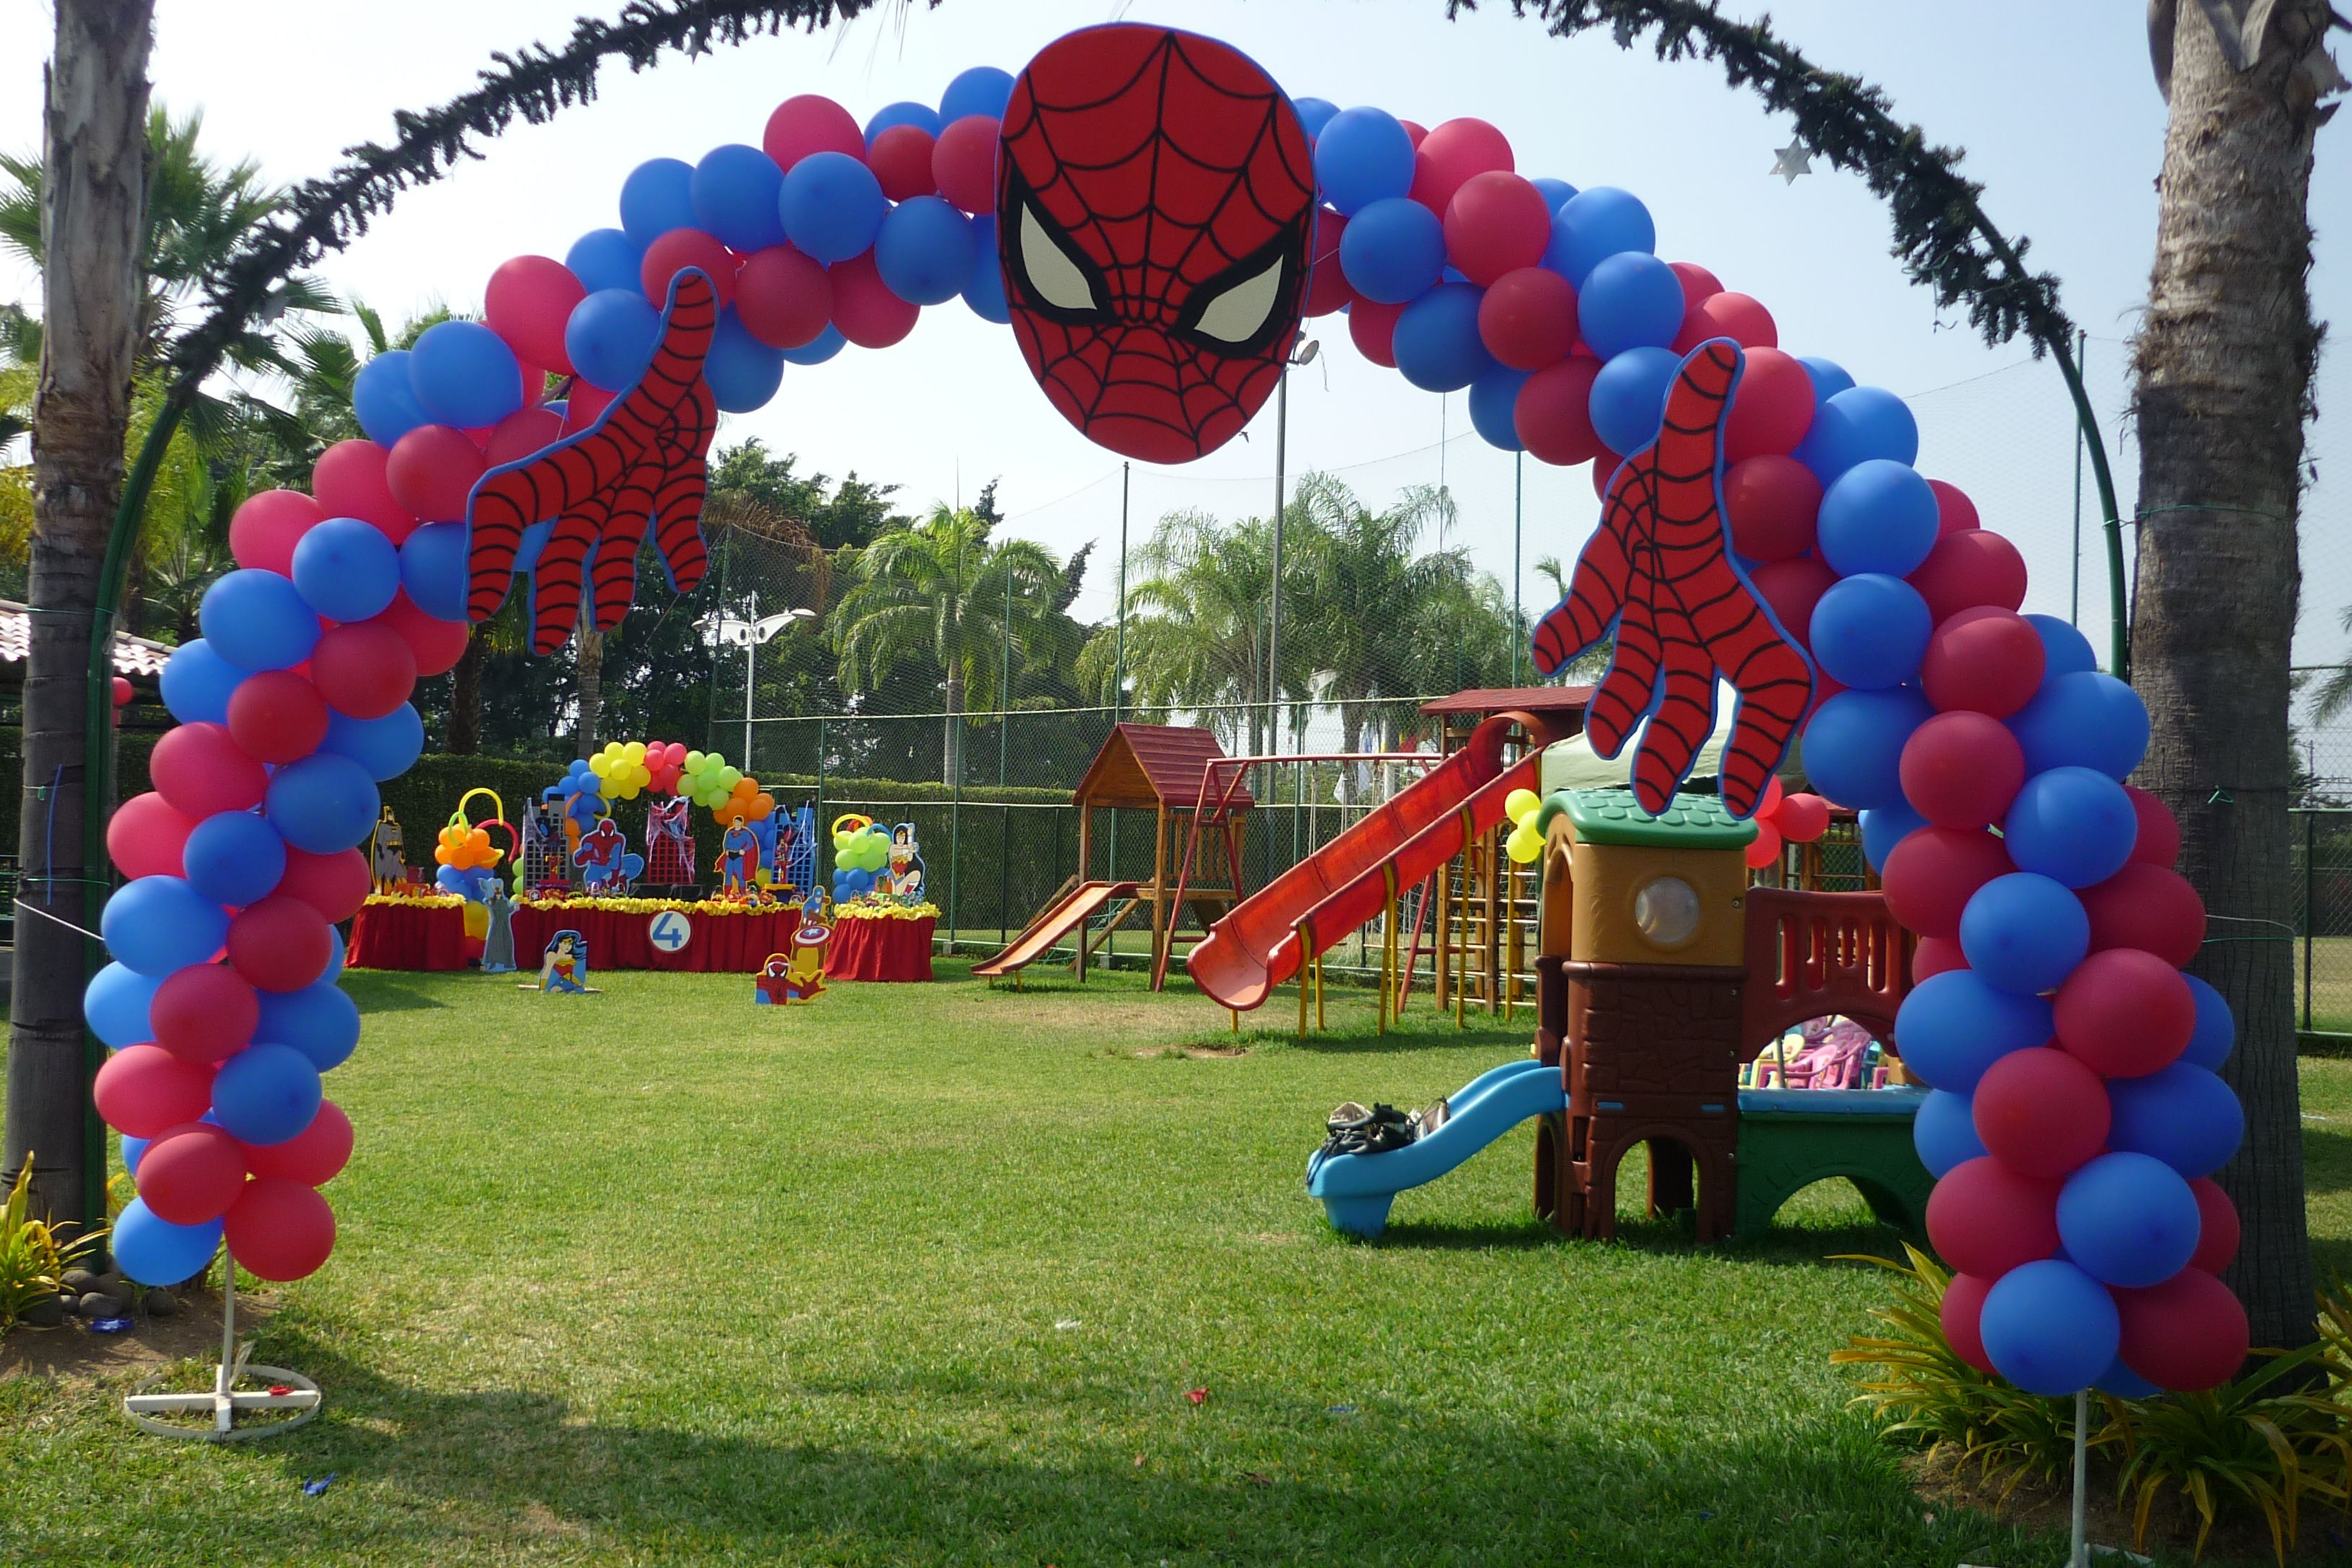 Decoracion con globos de los superheroes ideas fiestas for Decoracion con globos